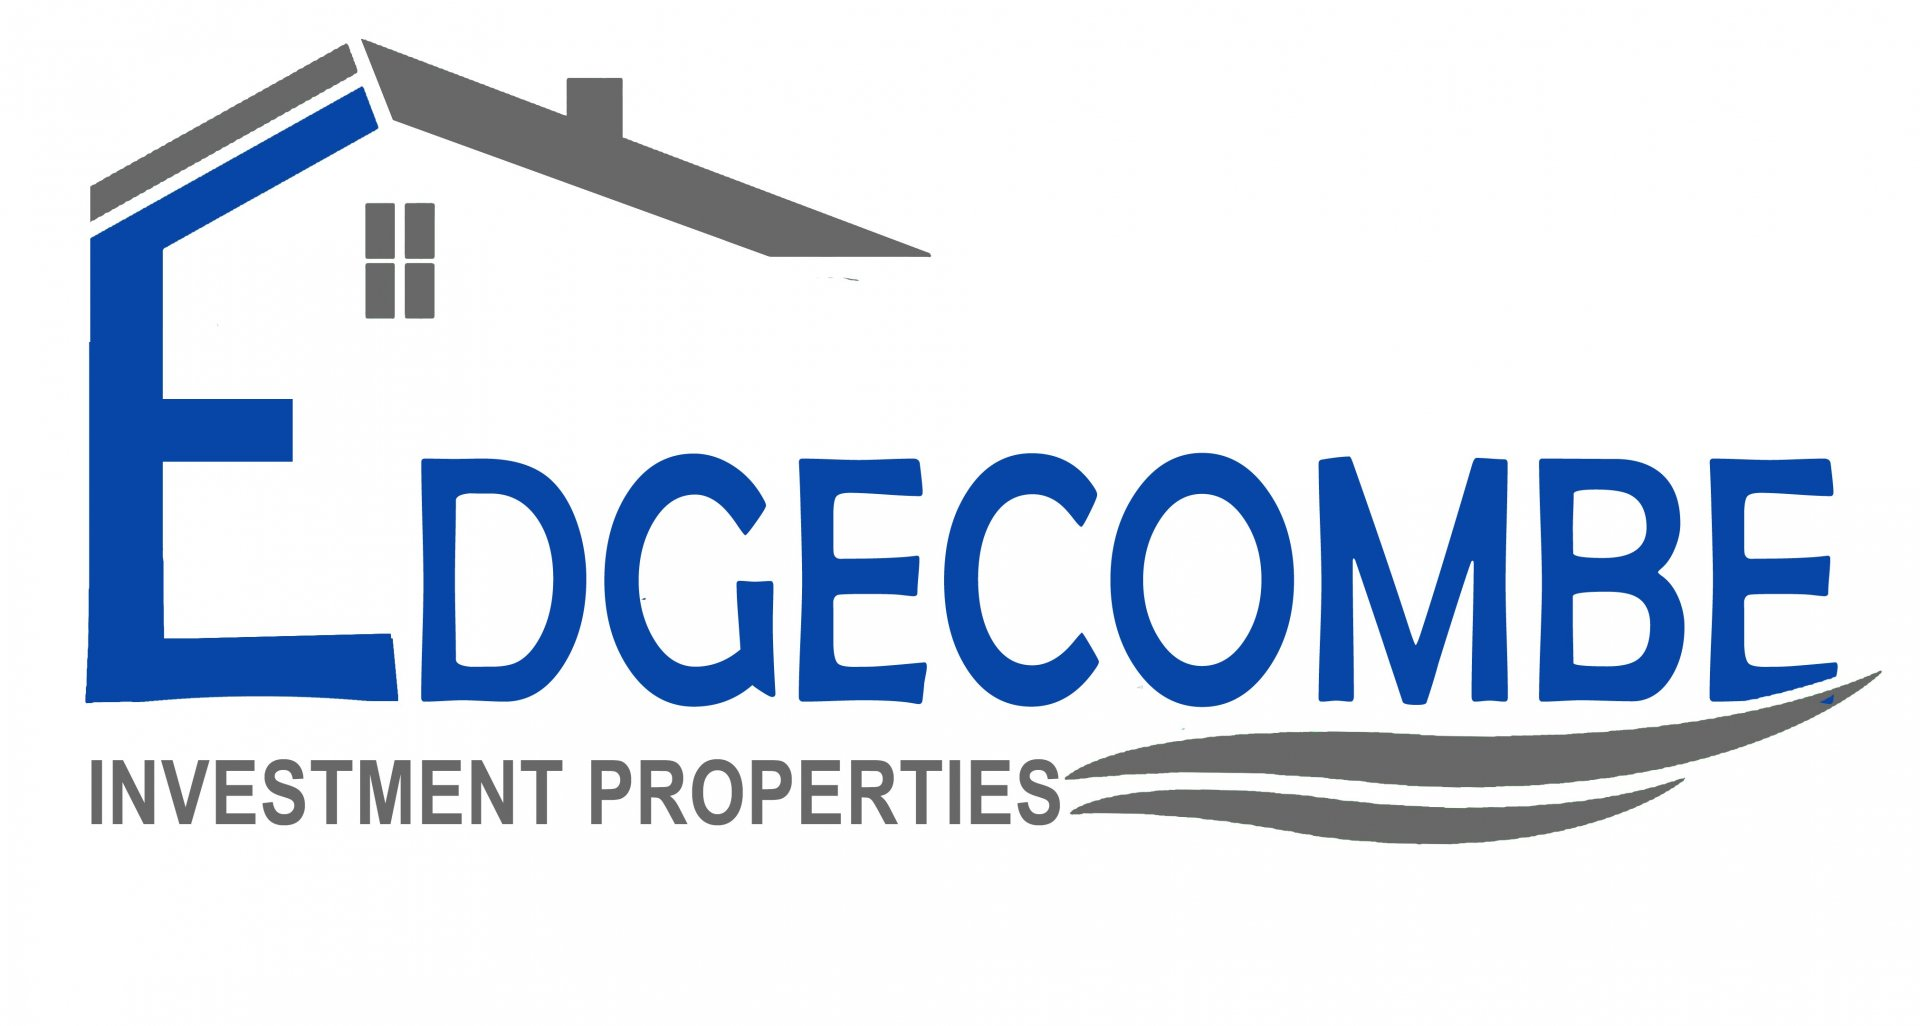 Edgecombe Investment Properties (We Buy Houses)  logo